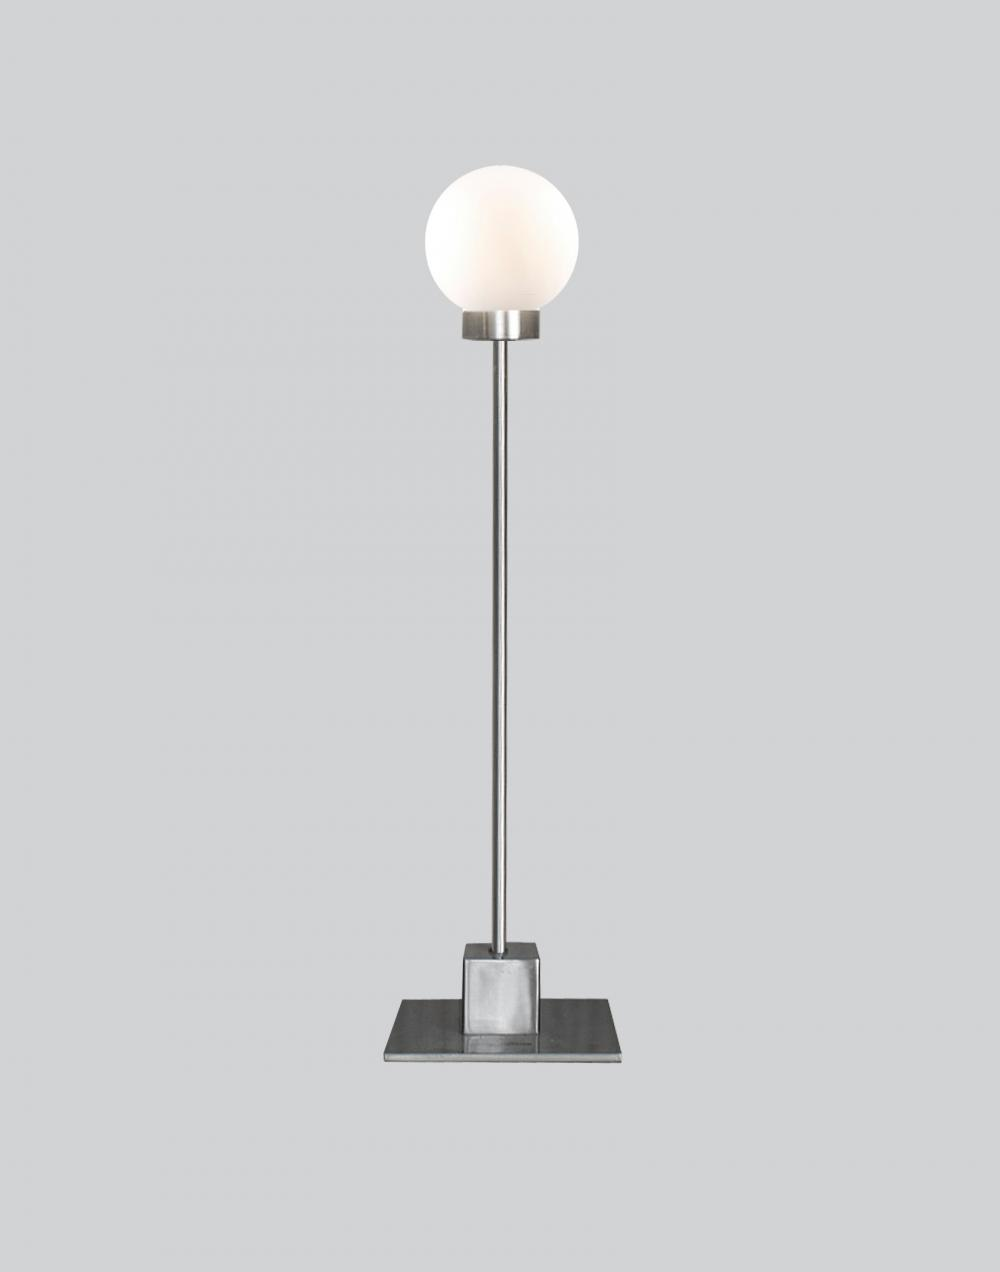 CLEARANCE: Snowball table light - 40% OFF